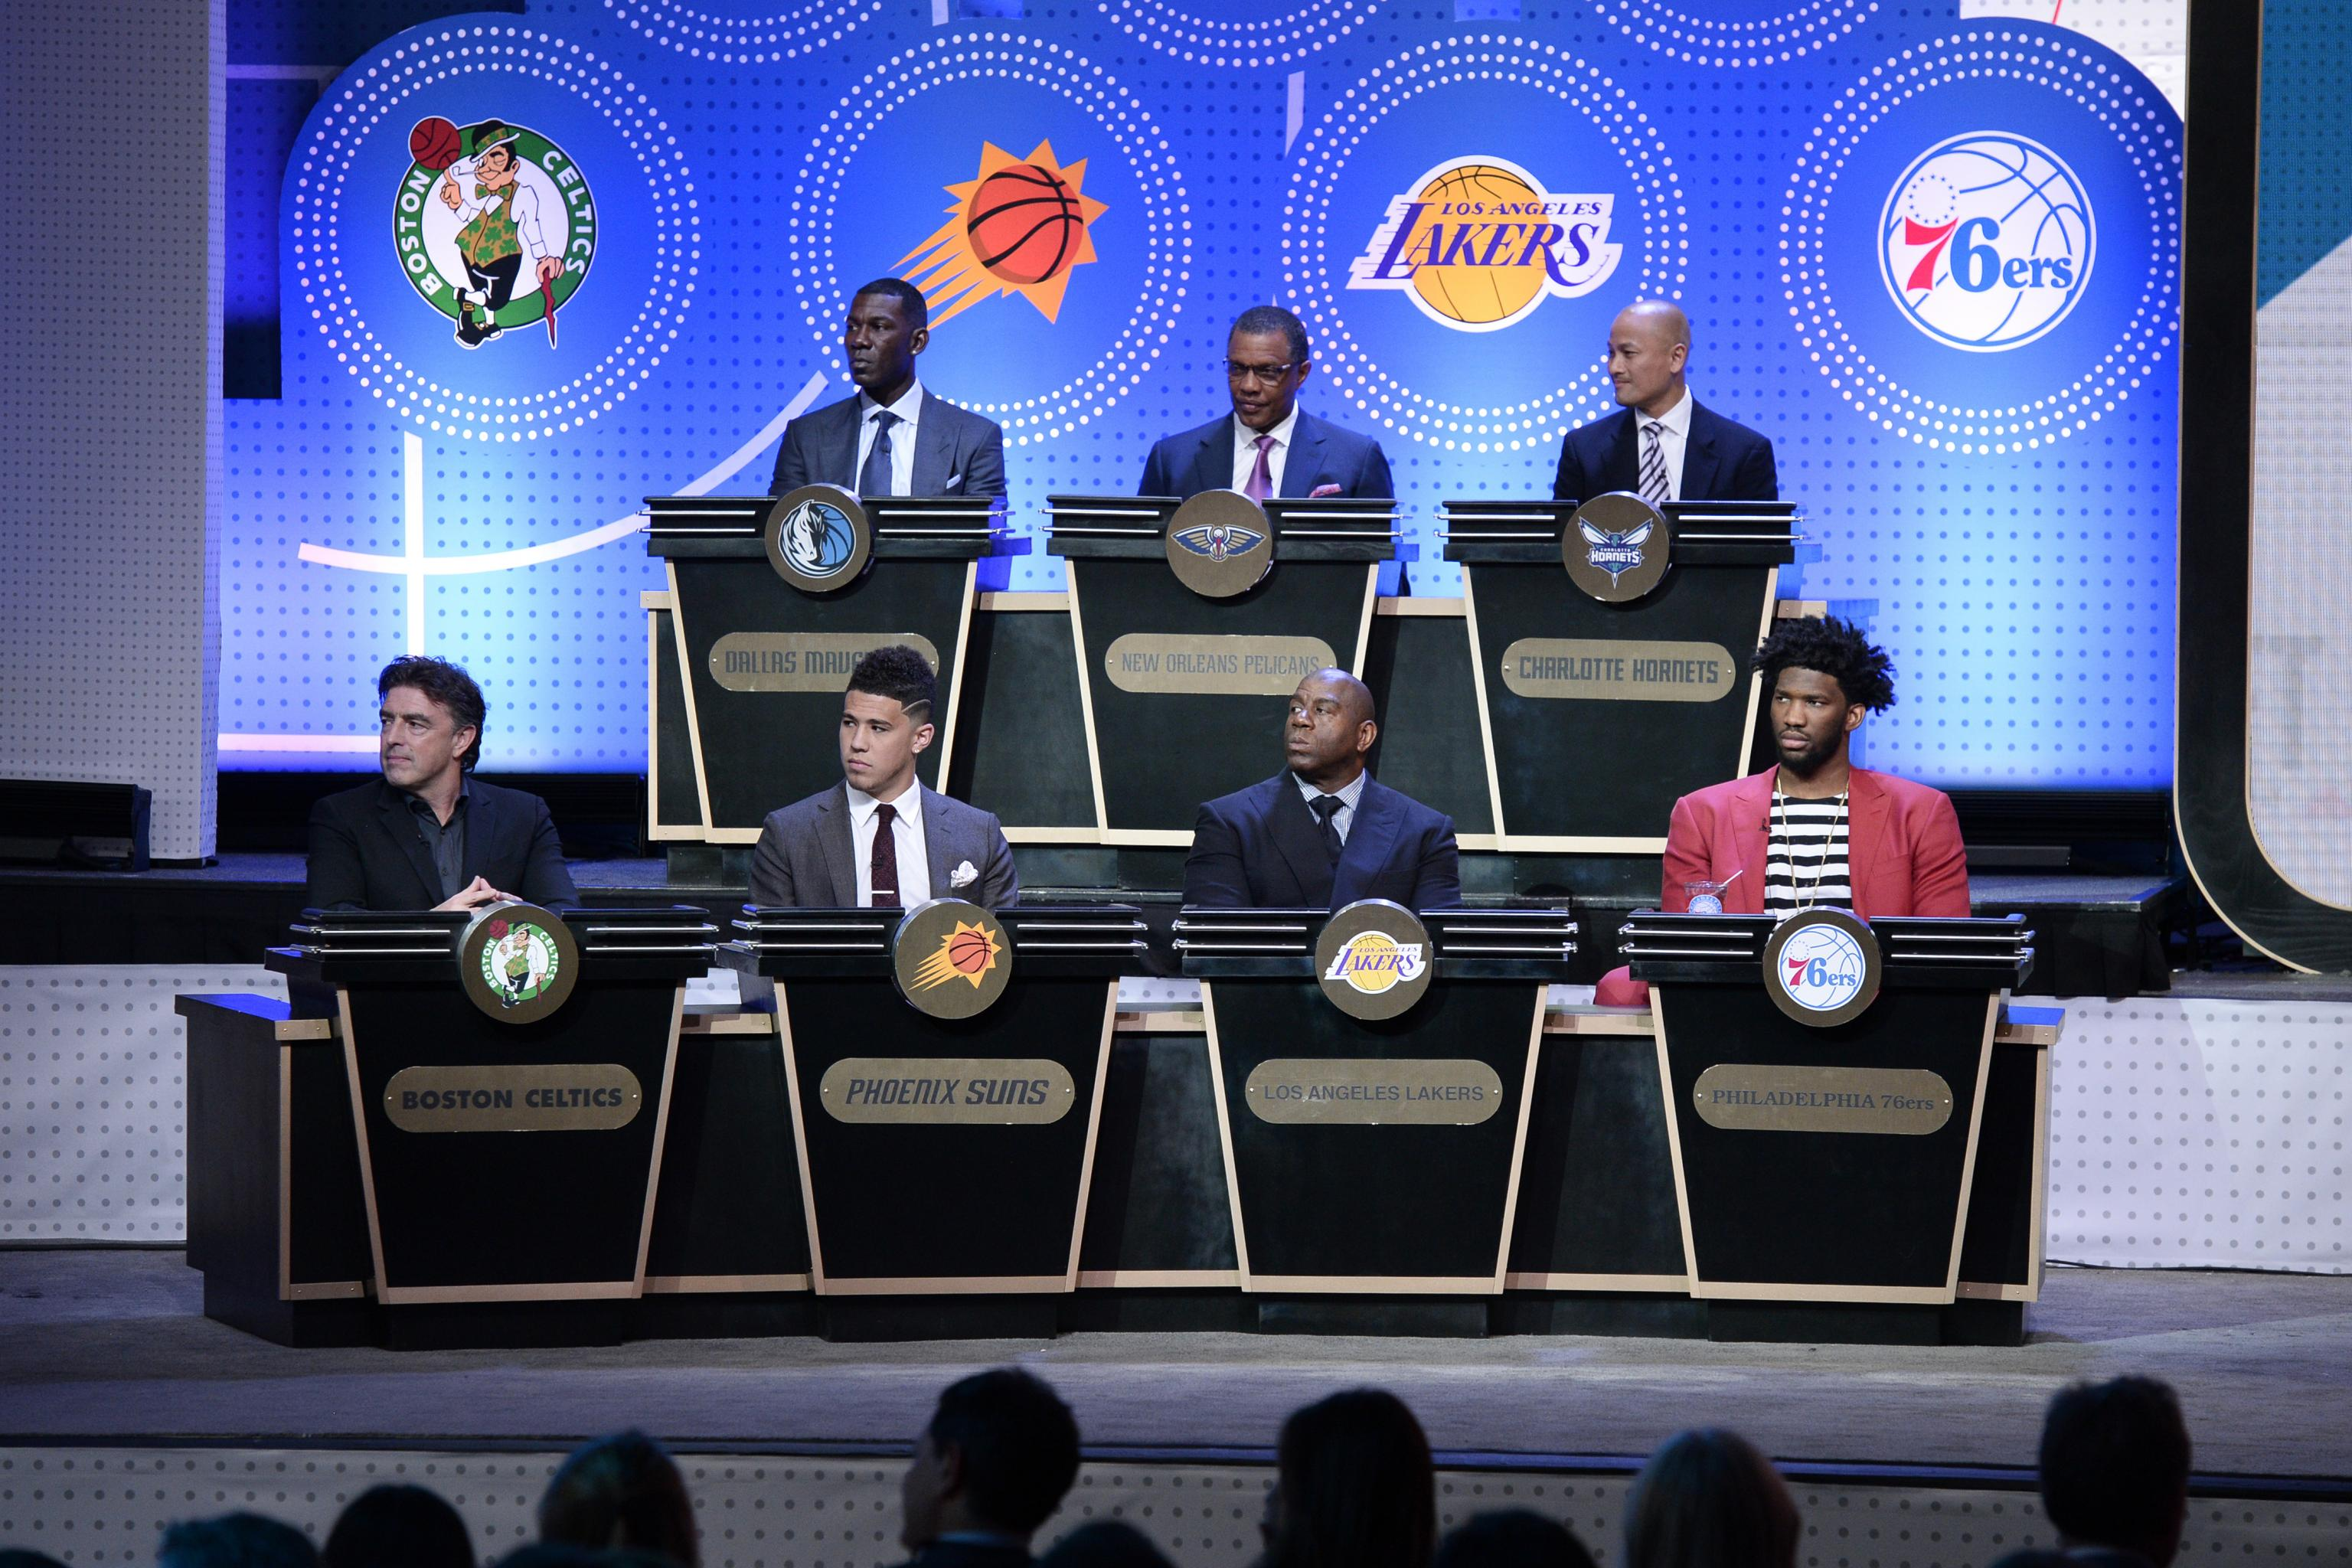 NBA Draft Lottery 2018: Preview, Odds and Top Teams to Watch